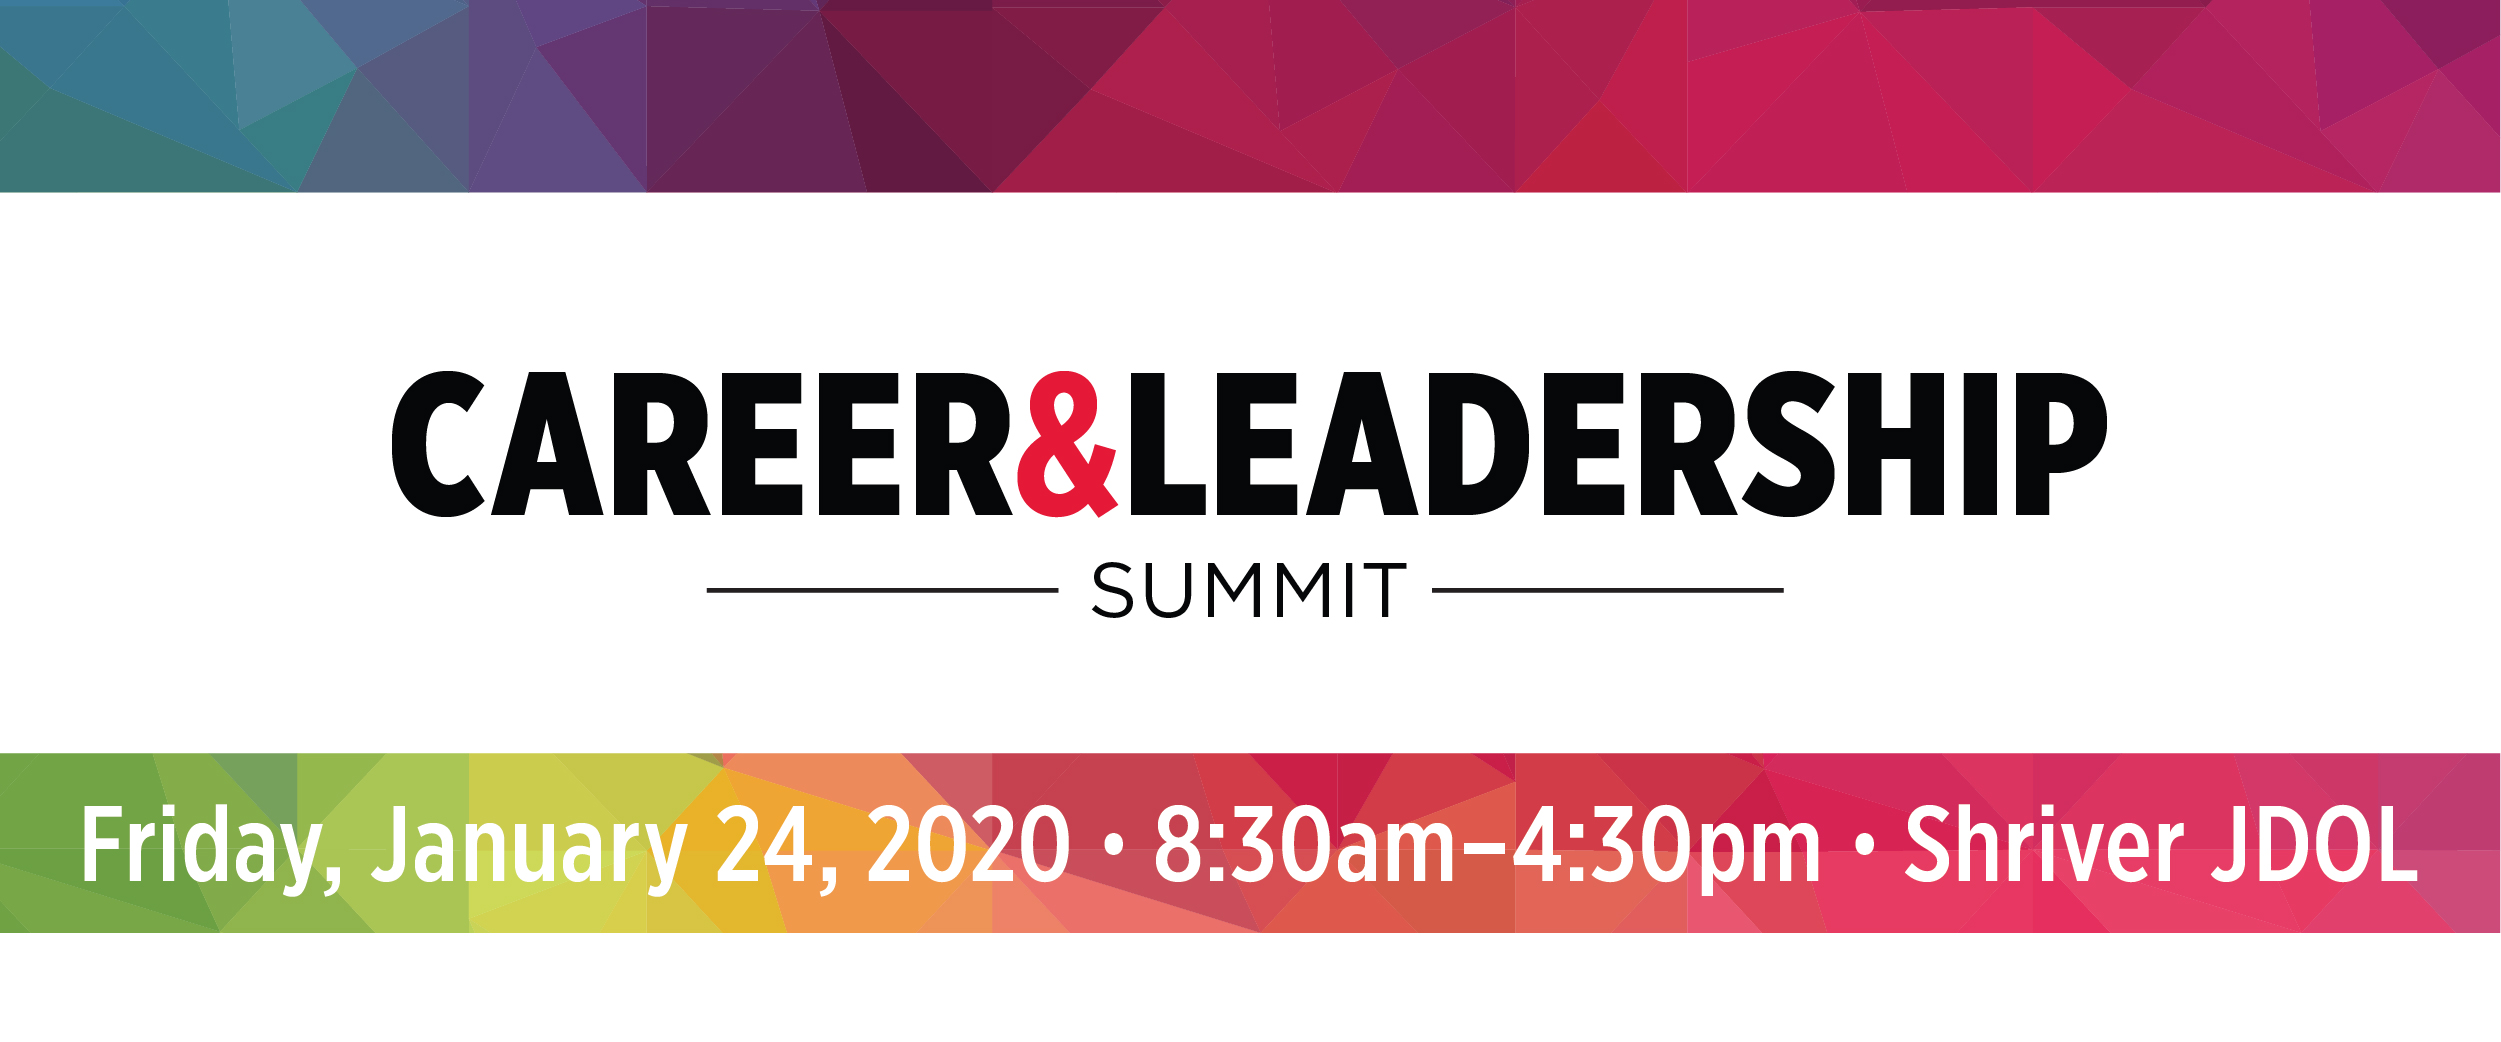 Career & Leadership Summit. Friday, January 24, 2020 • 8:30am–4:30pm • Shriver JDOL